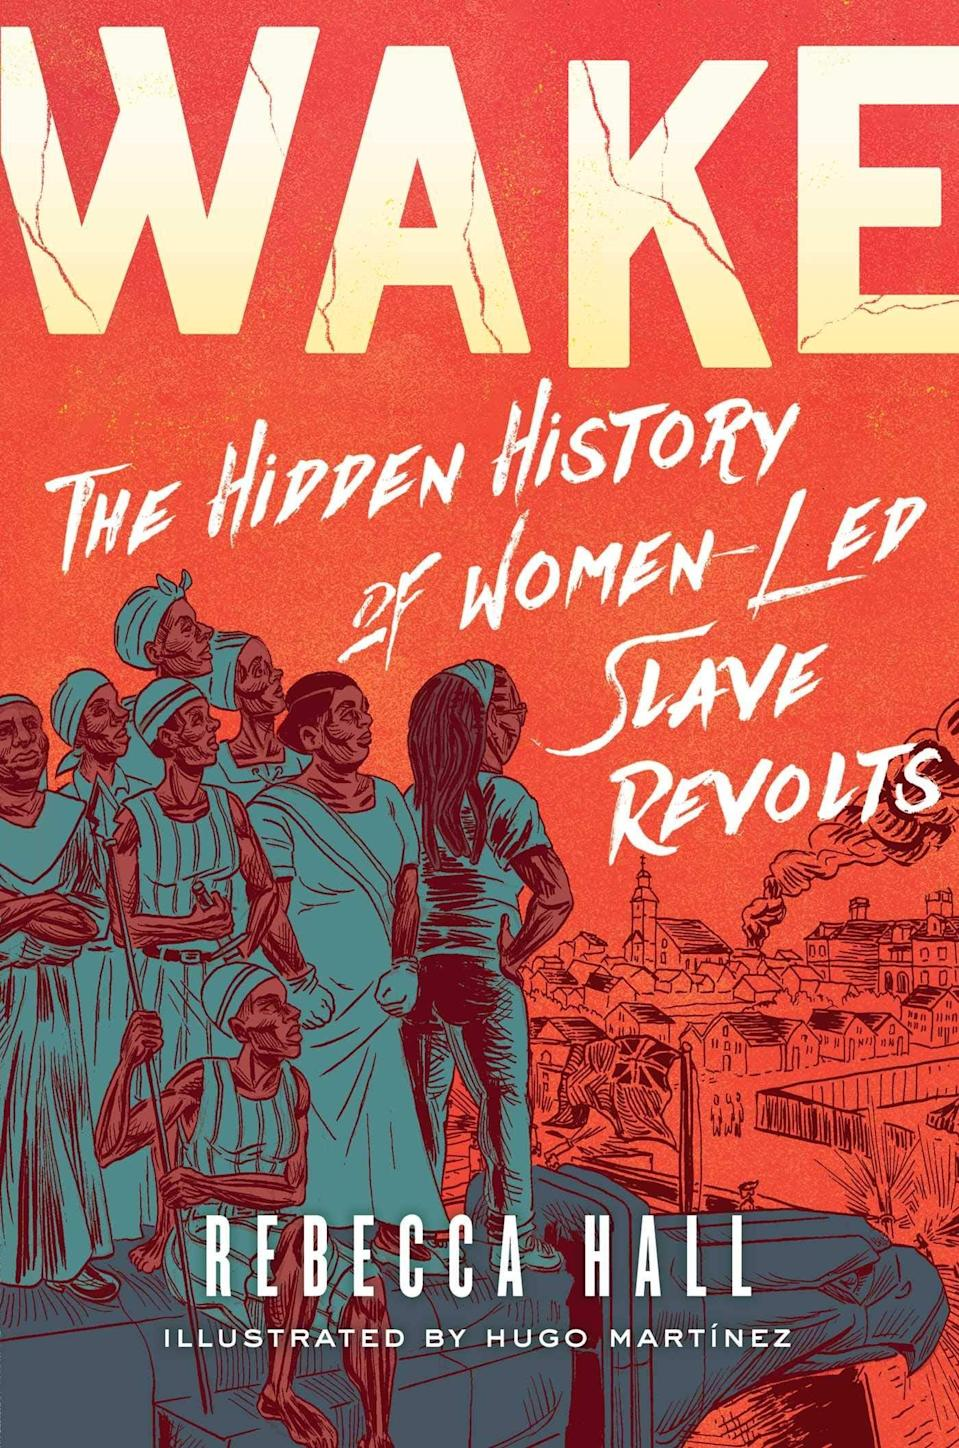 """<p><span><strong>Wake: The Hidden History of Women-Led Slave Revolts</strong></span> by <a class=""""link rapid-noclick-resp"""" href=""""https://www.popsugar.com/Rebecca-Hall"""" rel=""""nofollow noopener"""" target=""""_blank"""" data-ylk=""""slk:Rebecca hall"""">Rebecca hall</a> is a graphic novel-memoir hybrid that uncovers the untold stories of the women who have been at the forefront of slave revolts across history. Through careful research, Hall is shining a spotlight on these unsung heroes, while also delving into her own family's past, too. </p> <p><em>Out June 1</em></p>"""